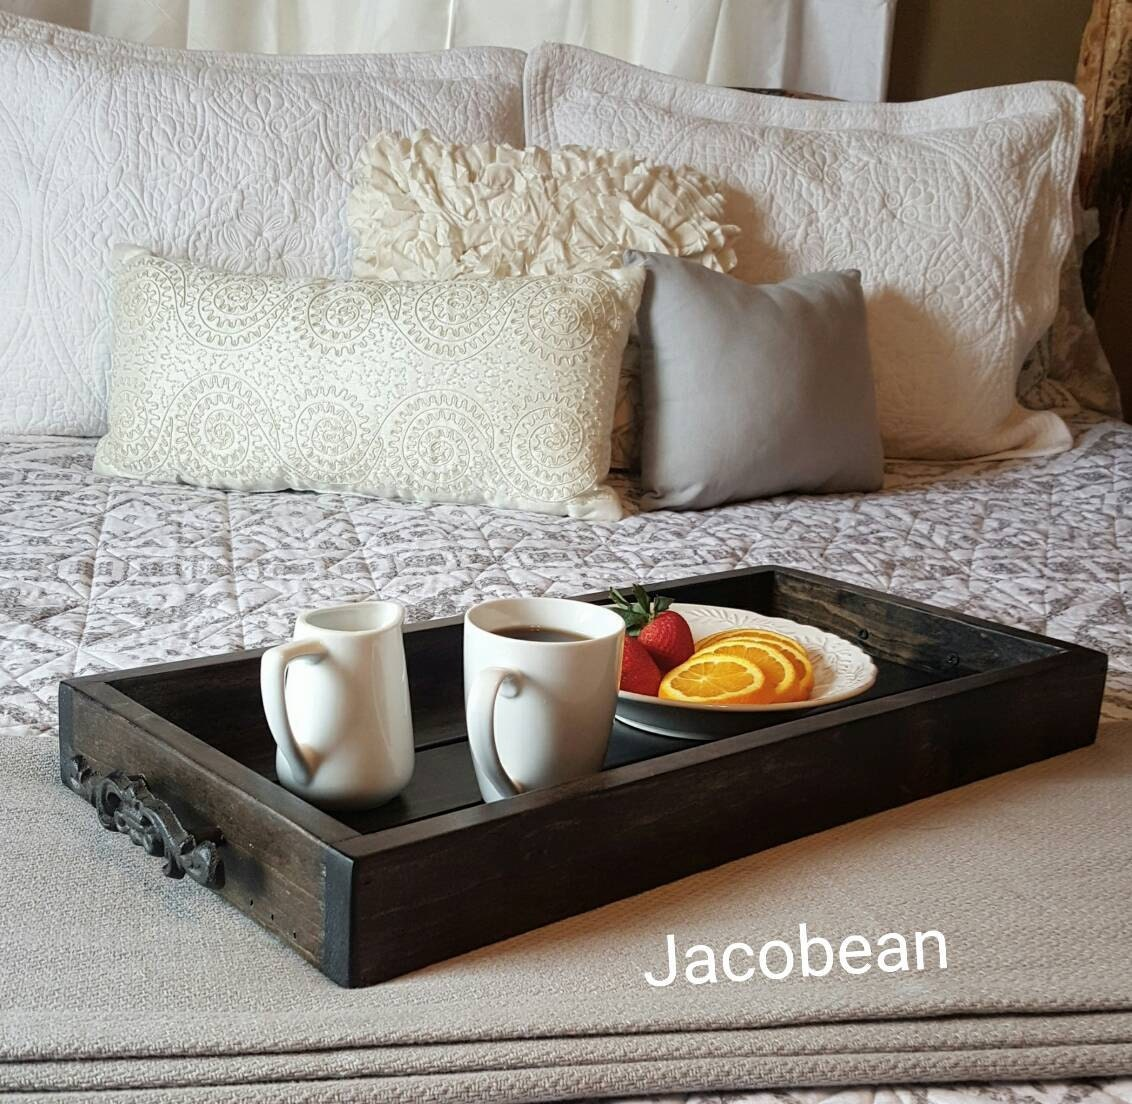 Magazine tray bed tray breakfast tray decorative tray coffee table tray casserole tray Decorative trays for coffee tables